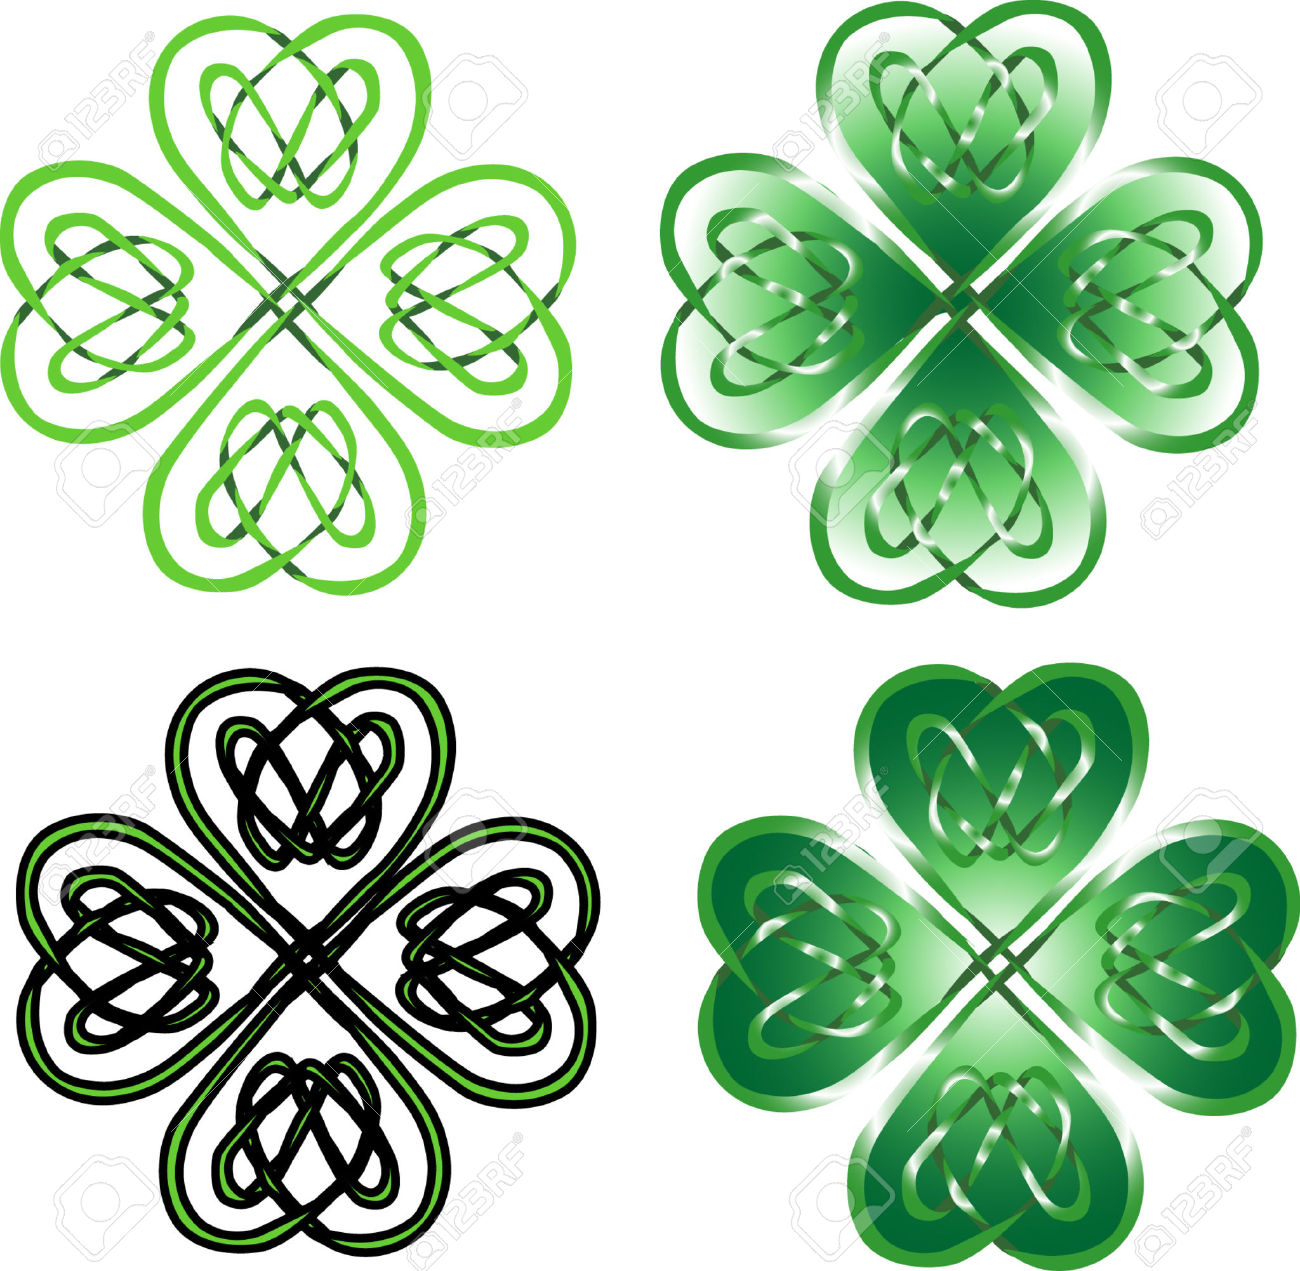 1300x1271 Celtic Knot Clipart Four Leaf Clover